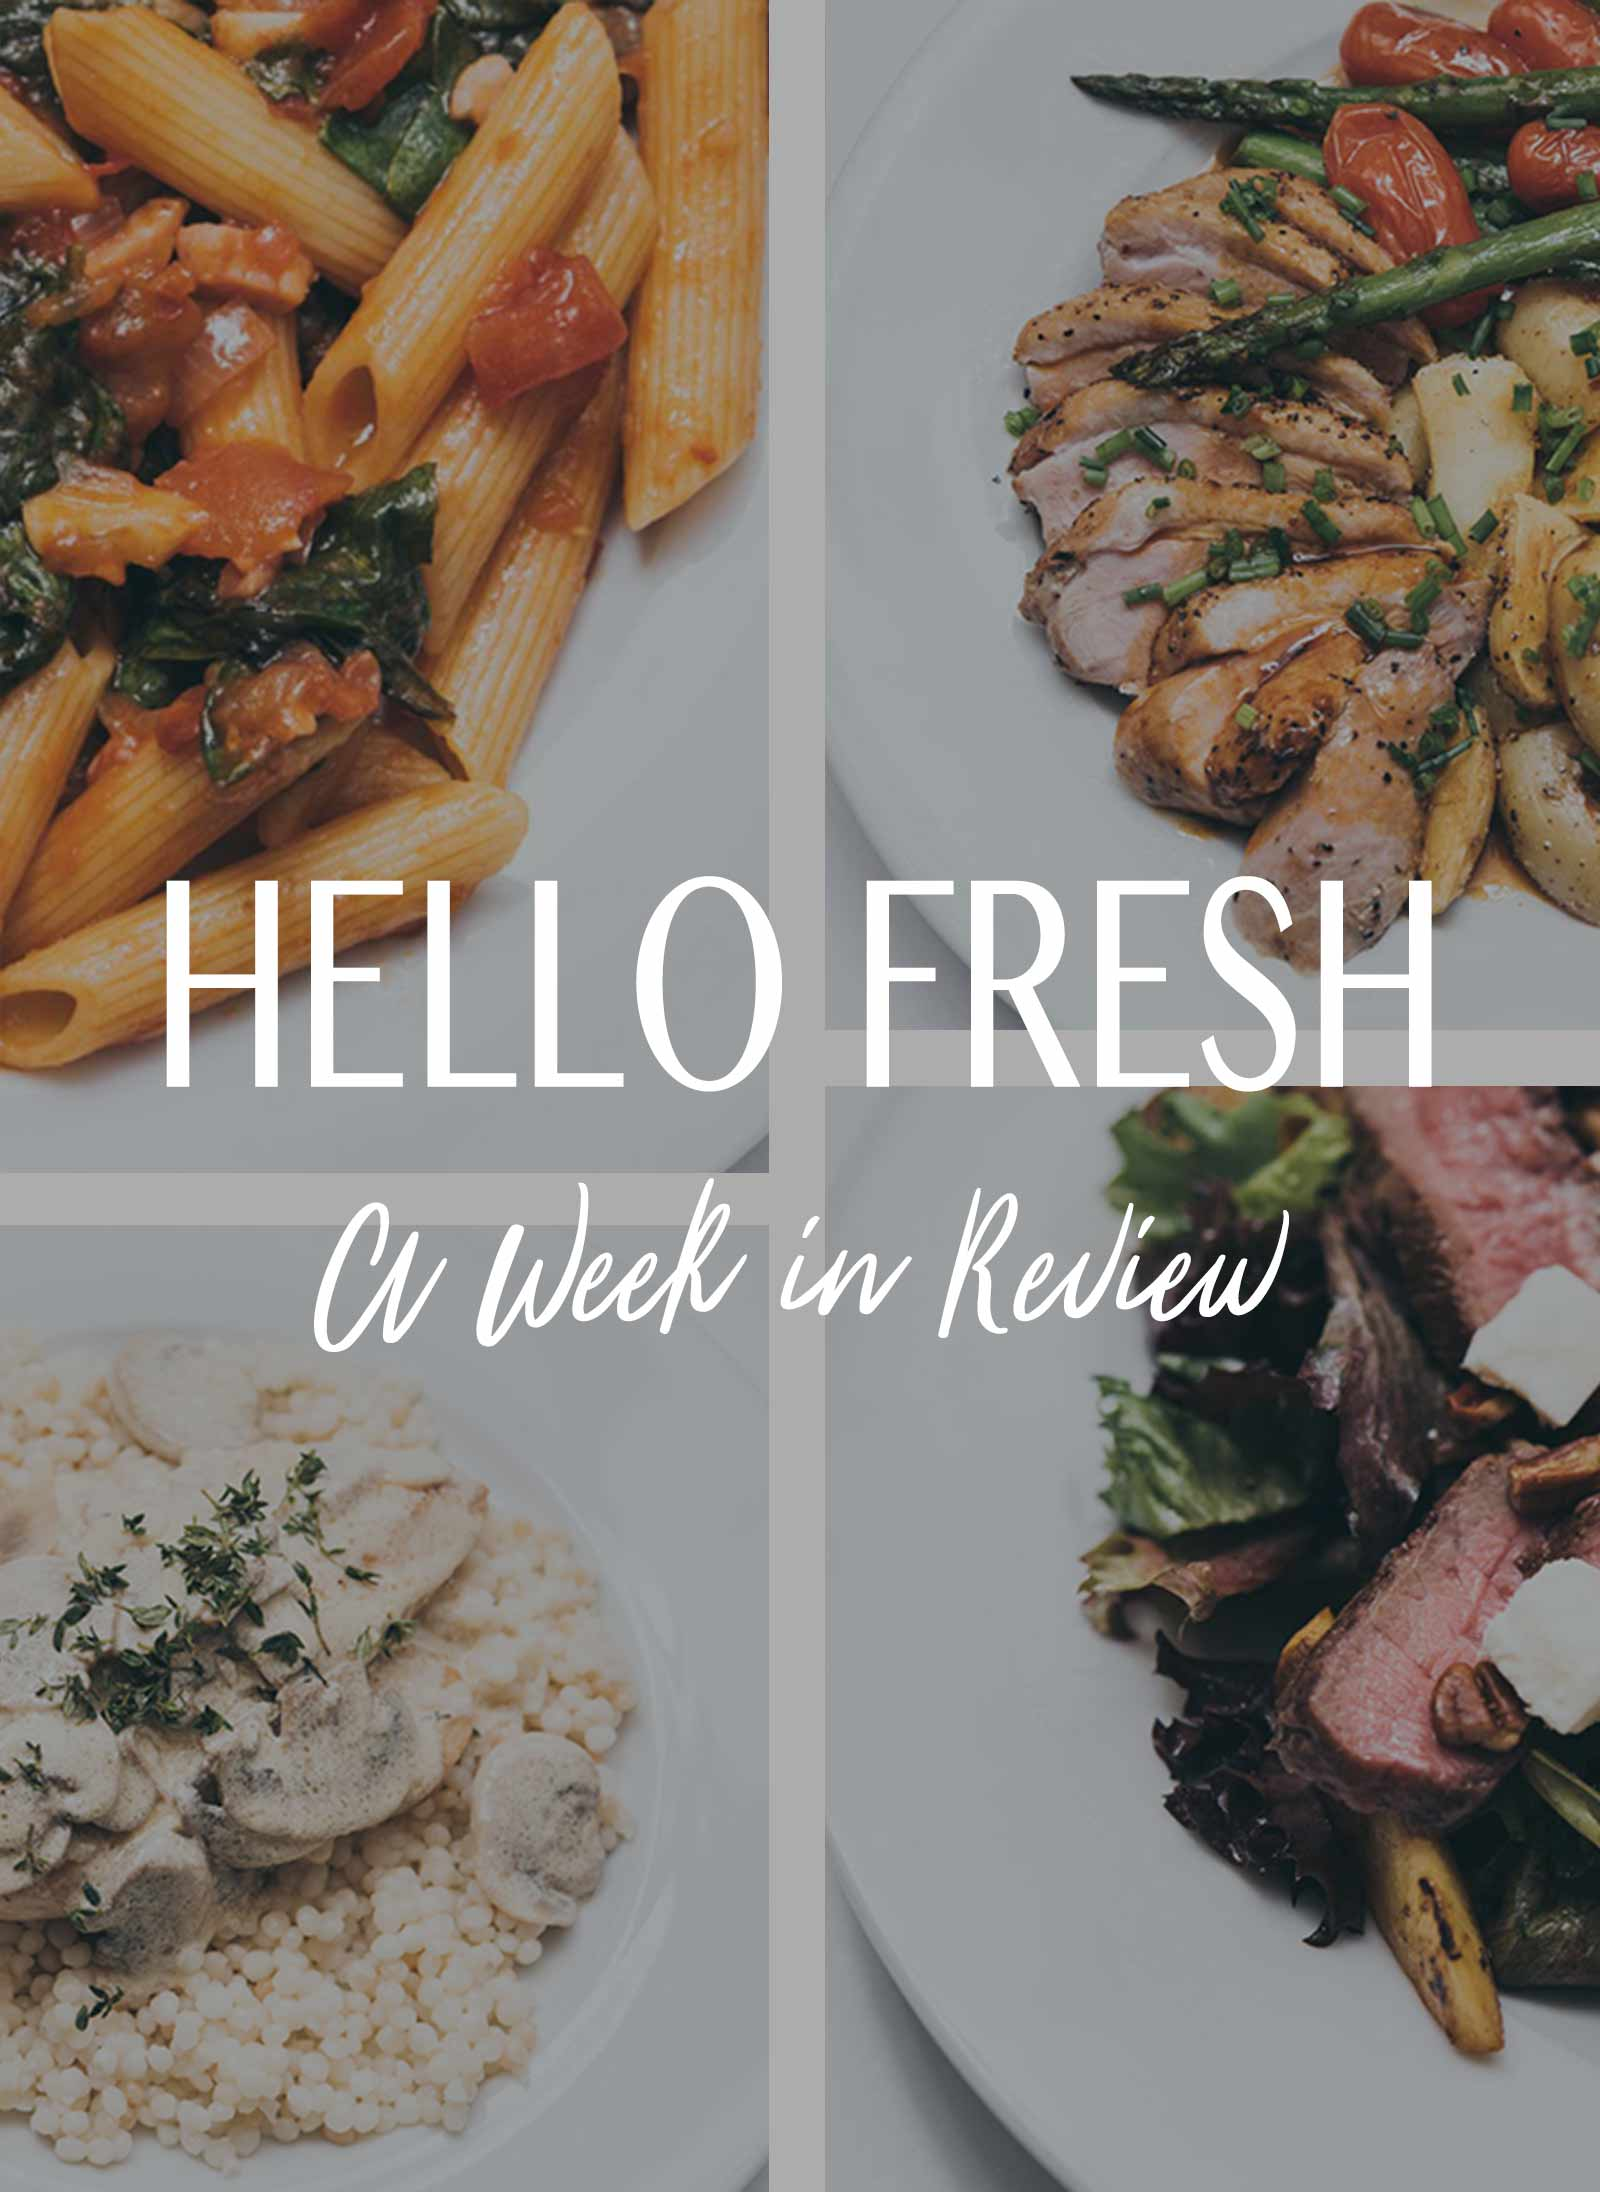 Meal Kit Delivery Service  Hellofresh Warranty Number